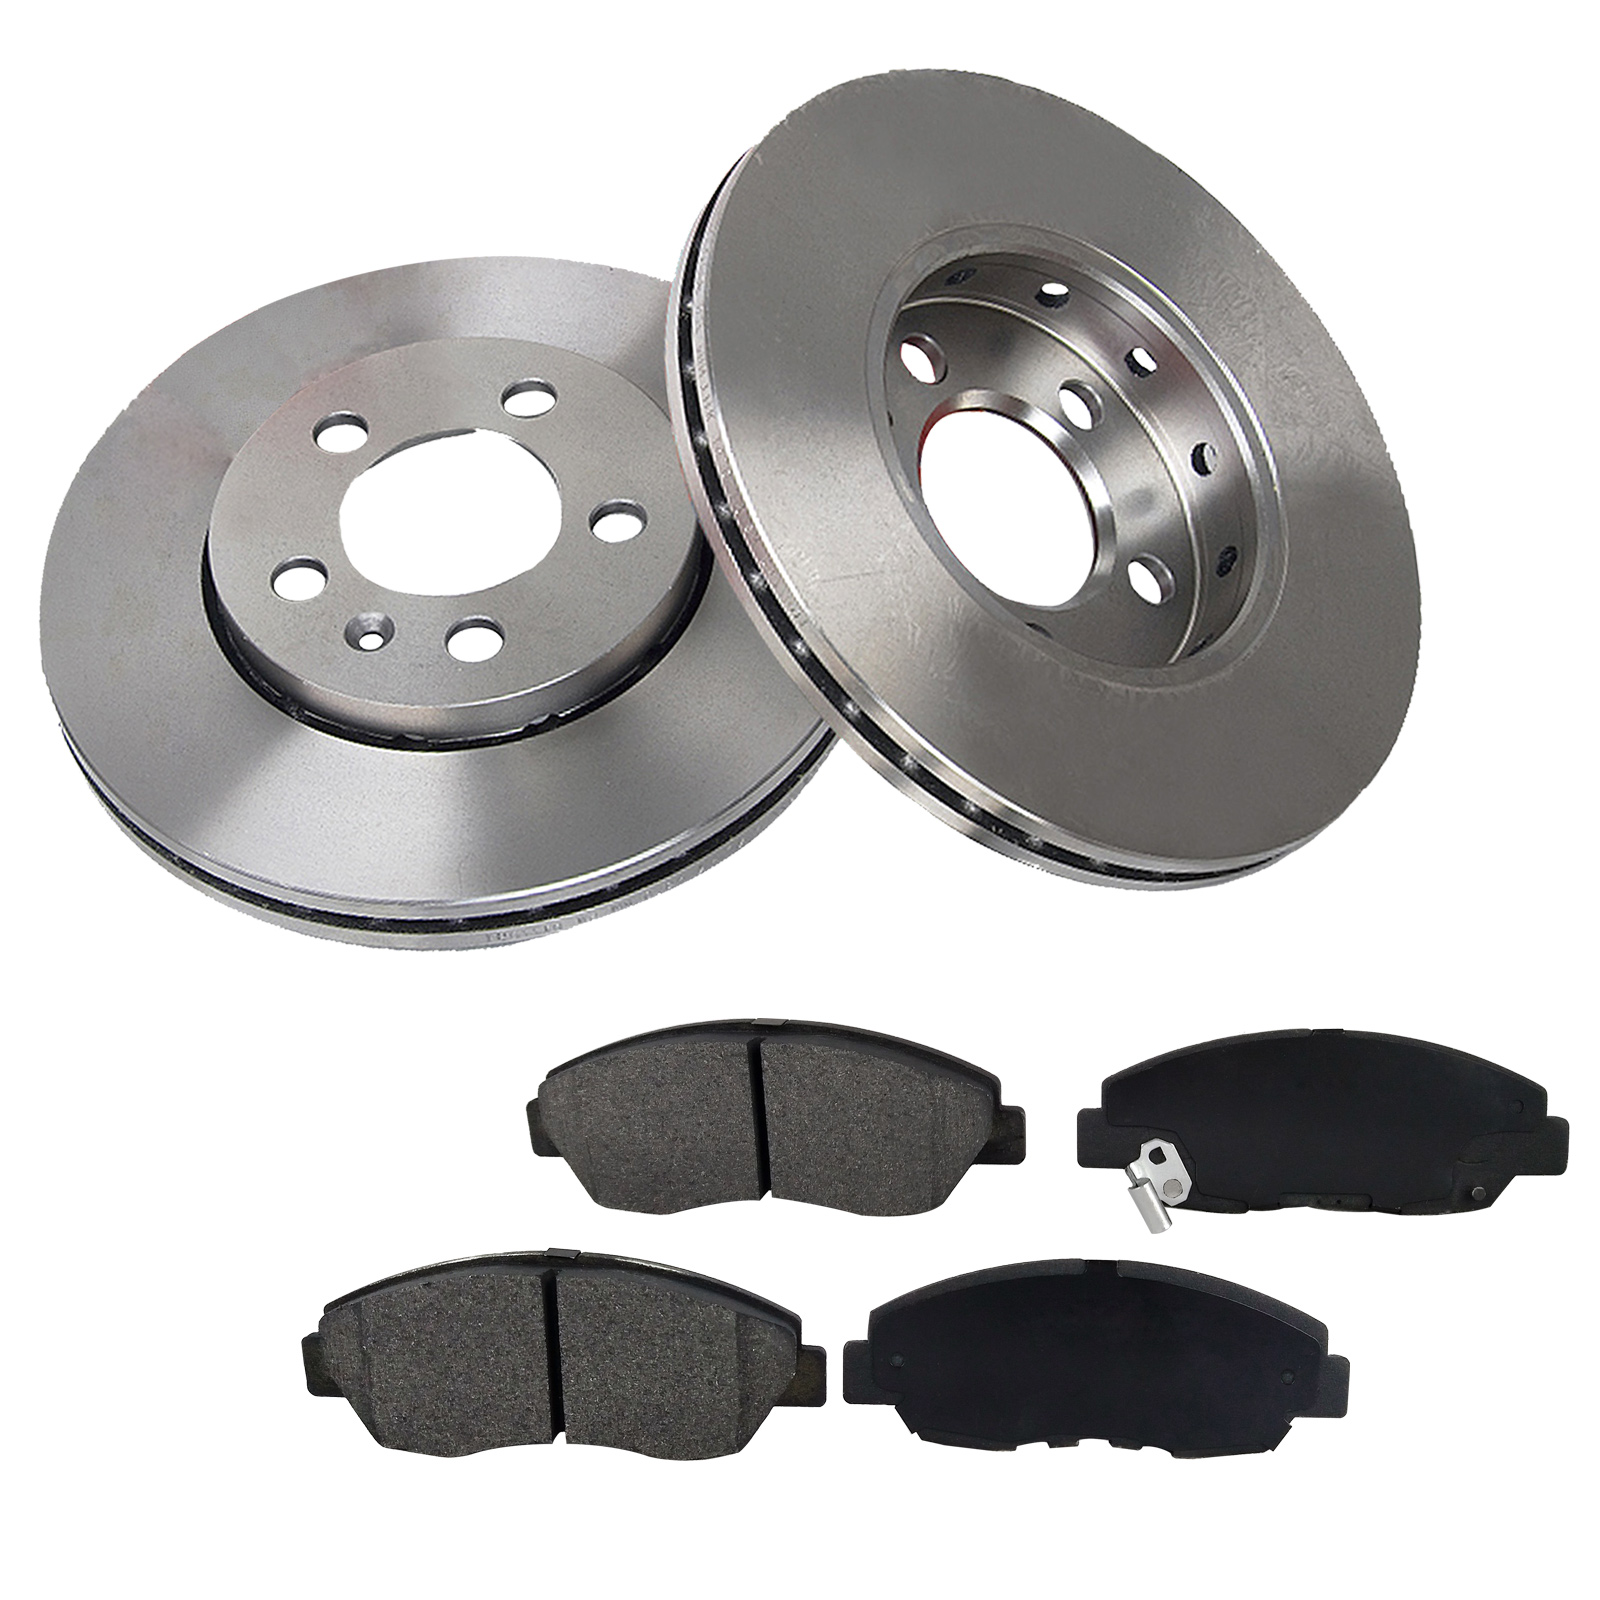 [2 Disc 4PADS]278mm Front Brake Rotor & Pads For Ford Focus OE Quality by Transglobe Automotive